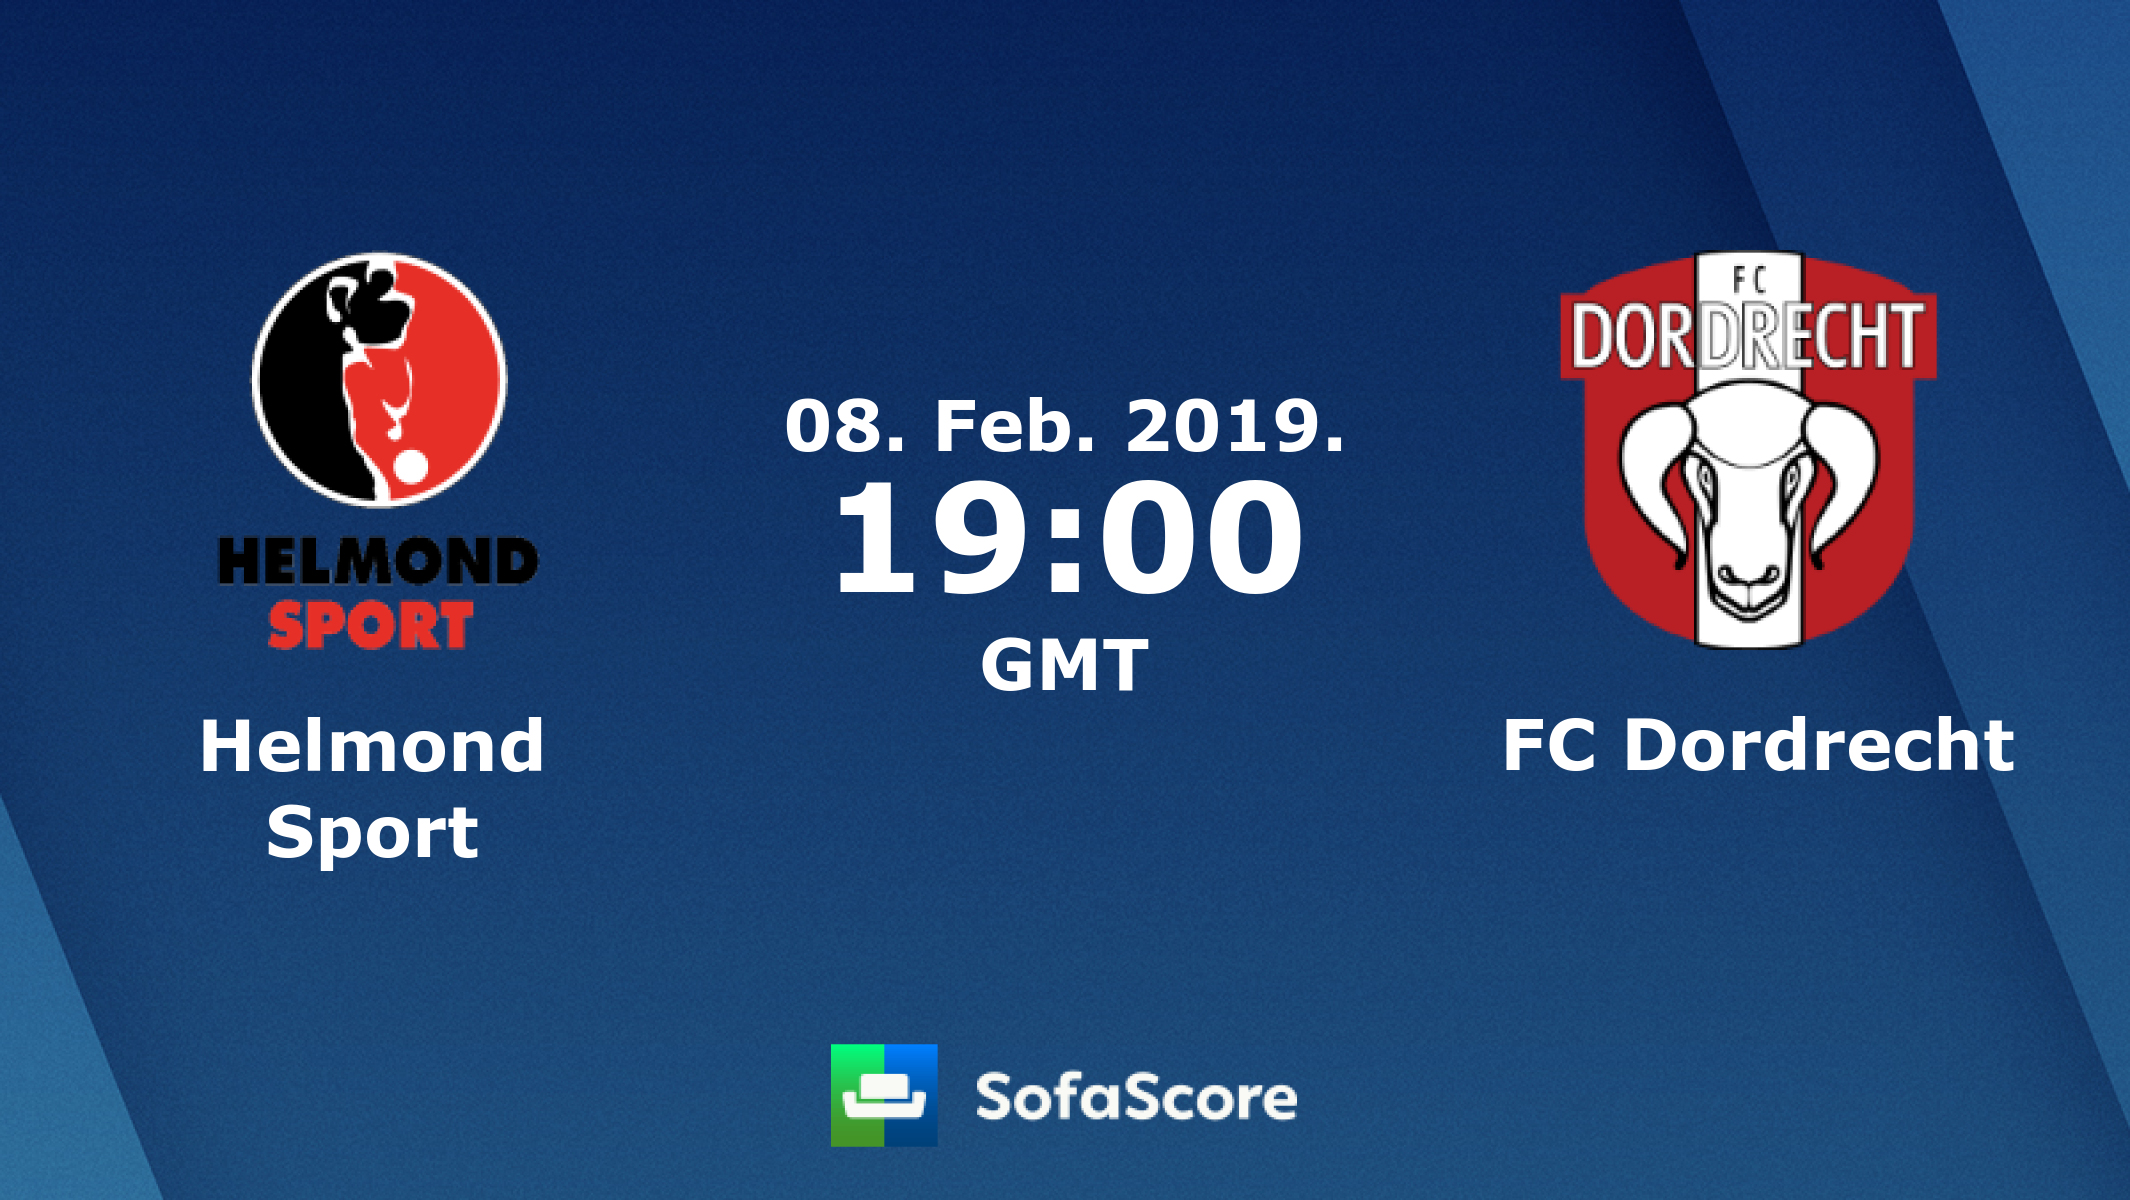 helmond sport fc dordrecht sofascore biglots sofa live score video stream and h2h results